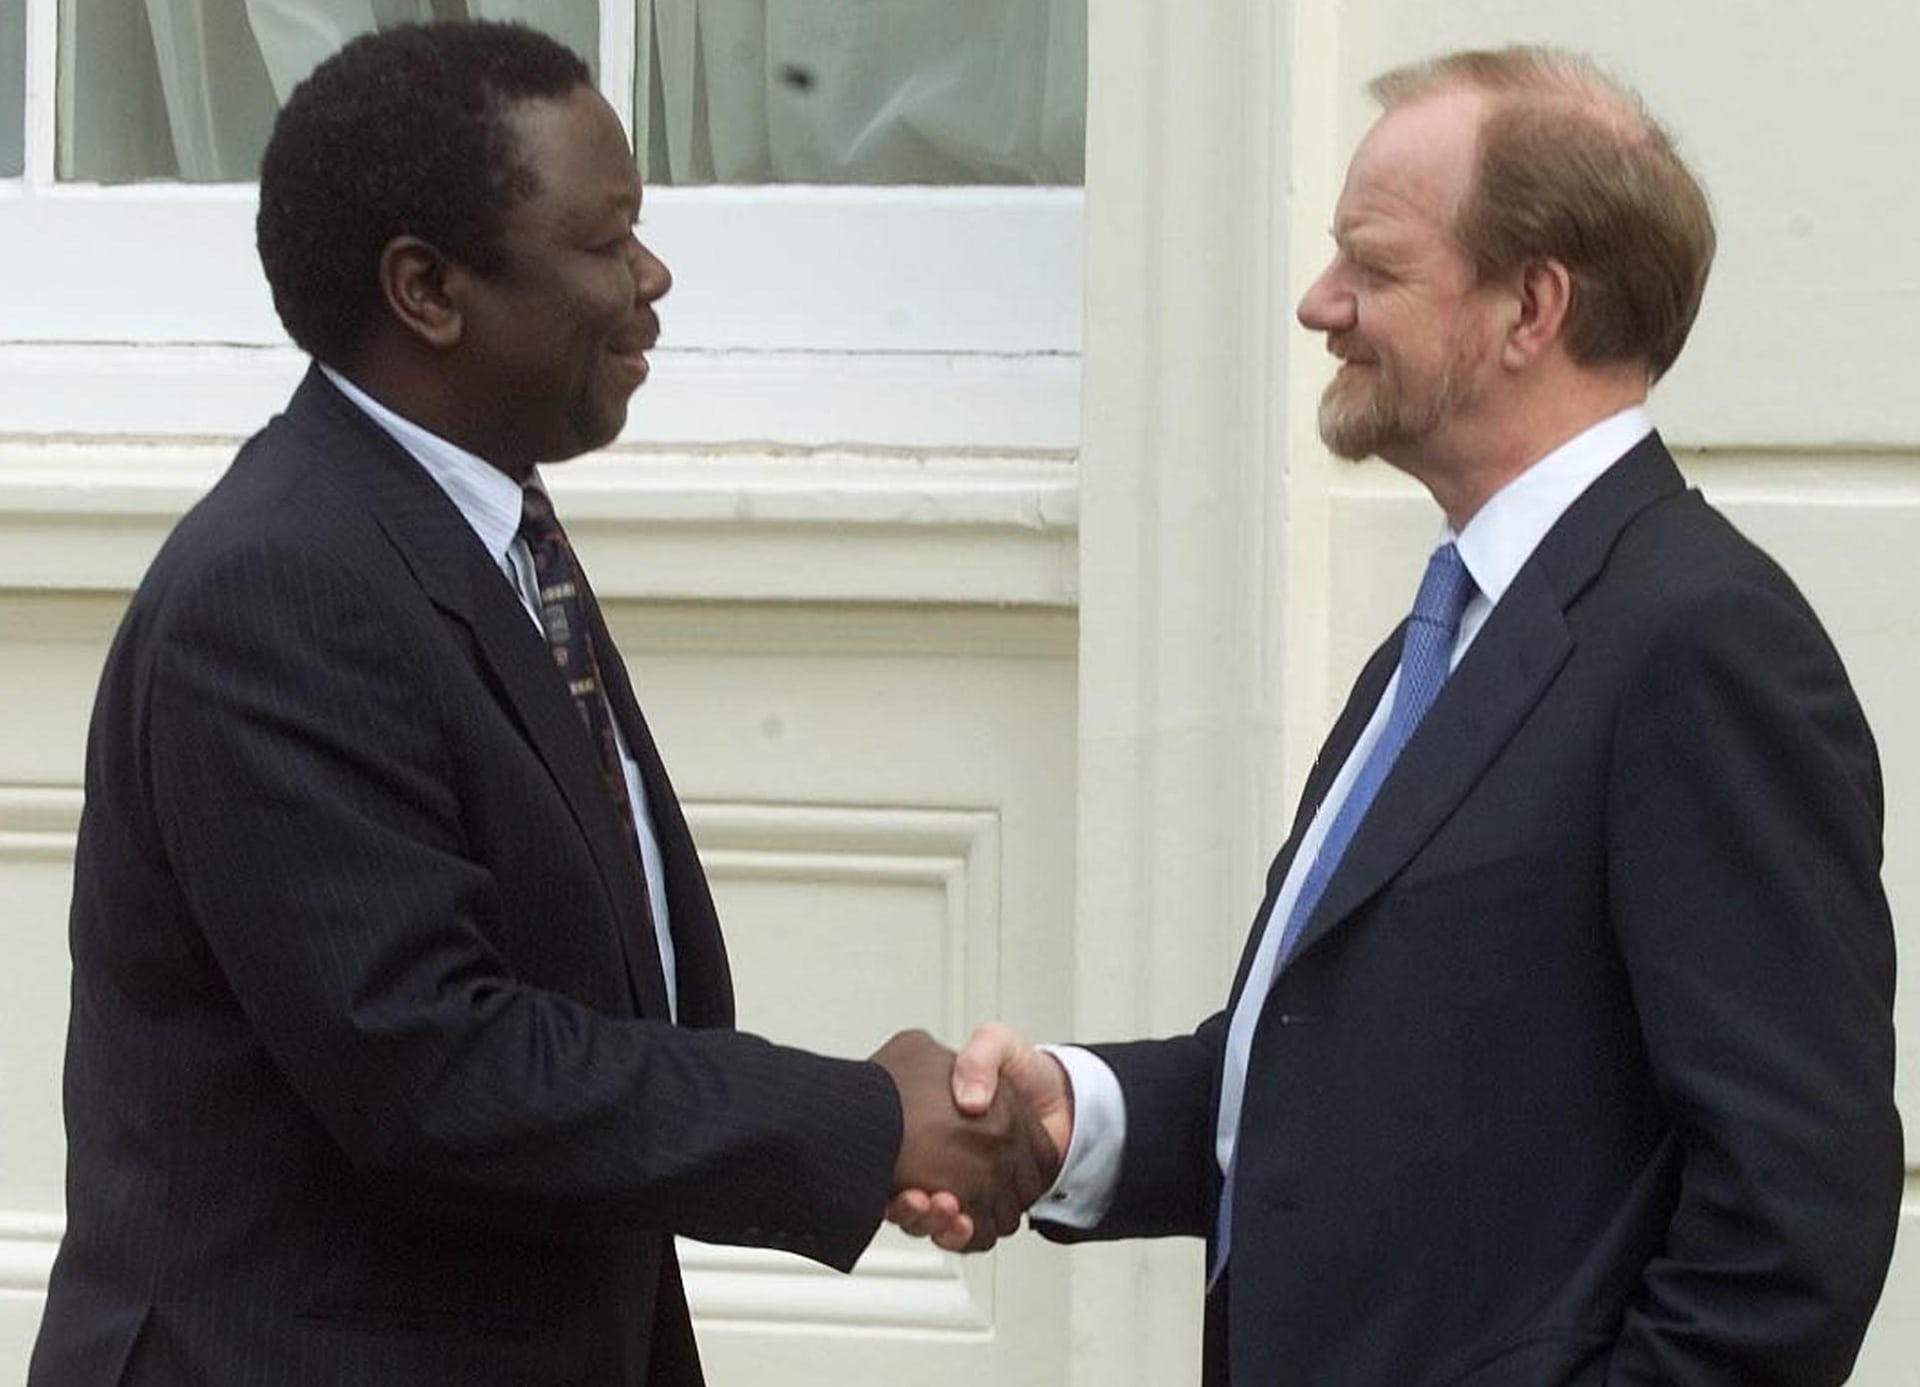 Meeting Robin Cook, the then UK foreign secretary, to discuss tensions in Zimbabwe caused by the seizure of white-owned farms, in April 2000.